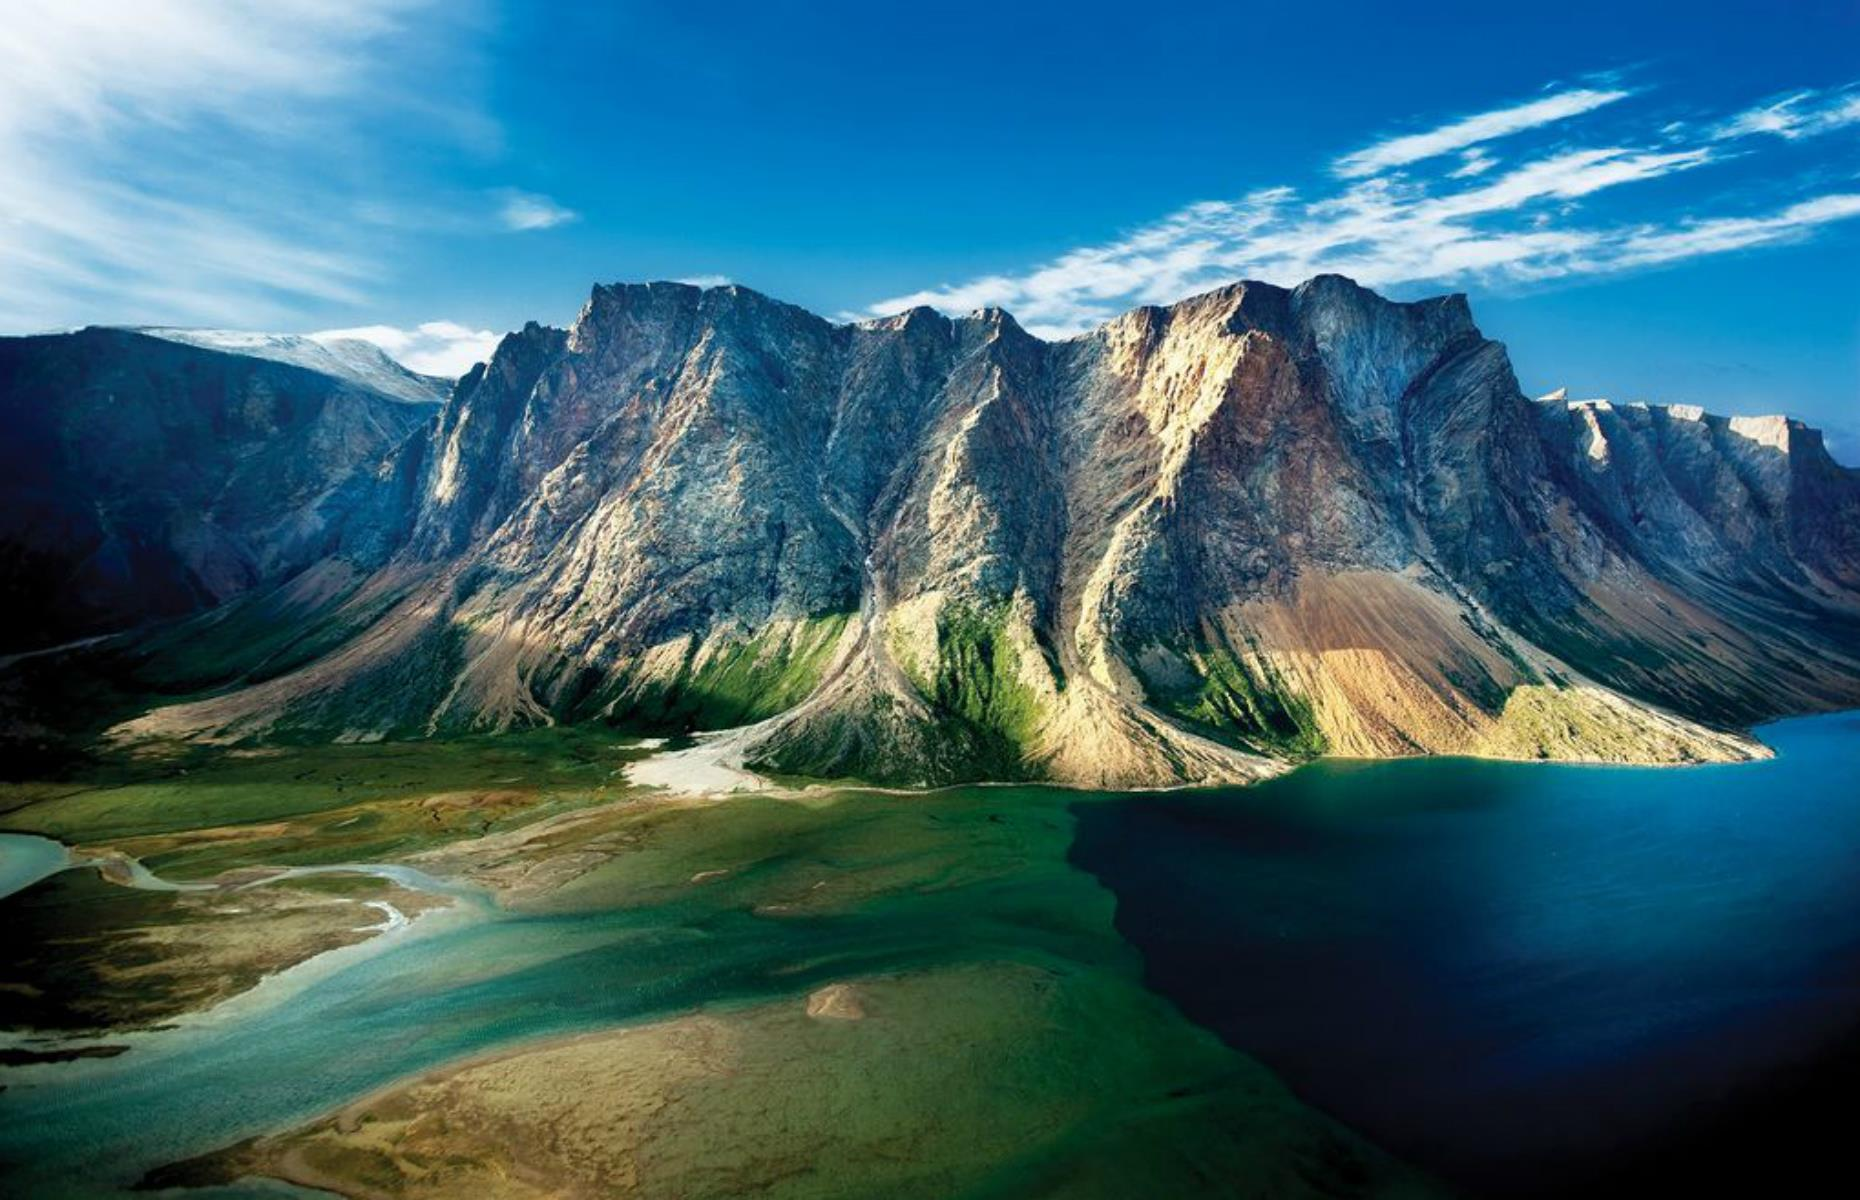 Slide 24 of 31: This Inuit-run reserve is as remote as it gets, with more than 3,745 square miles (9,700sq km) of wonderful, windswept wilderness on Canada's far north Labrador Peninsula. The Torngat Mountains form its jagged heart while a glorious patchwork of fjords, glaciers and rock-strewn meadows sprawls to a coastline where icebergs regularly drift past. There are no roads, trails or signs anywhere in the park, and its inaccessibility has allowed polar bears, caribou, Arctic foxes and wolves to thrive.